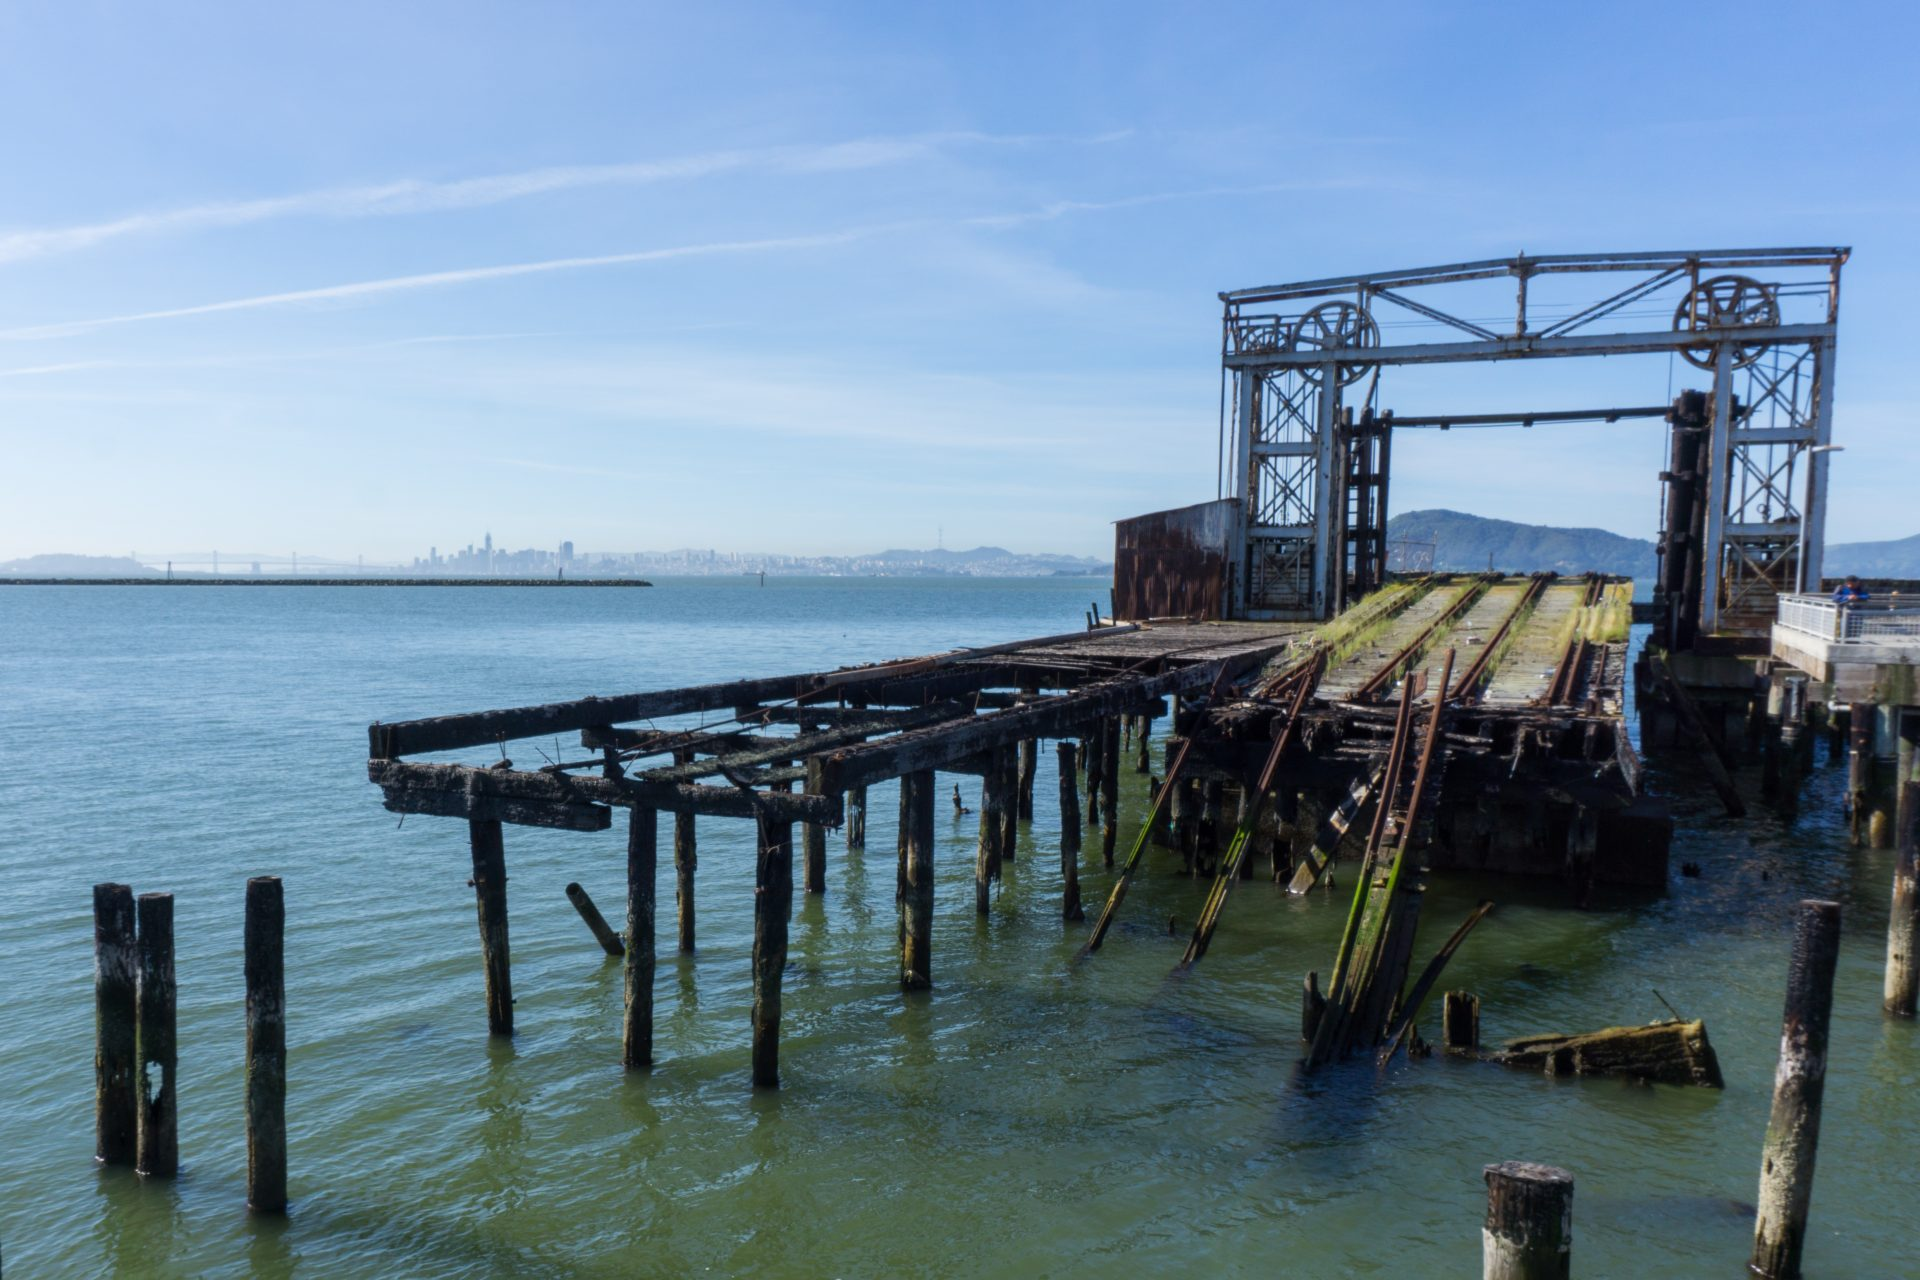 Dilapidated dock and old machinery